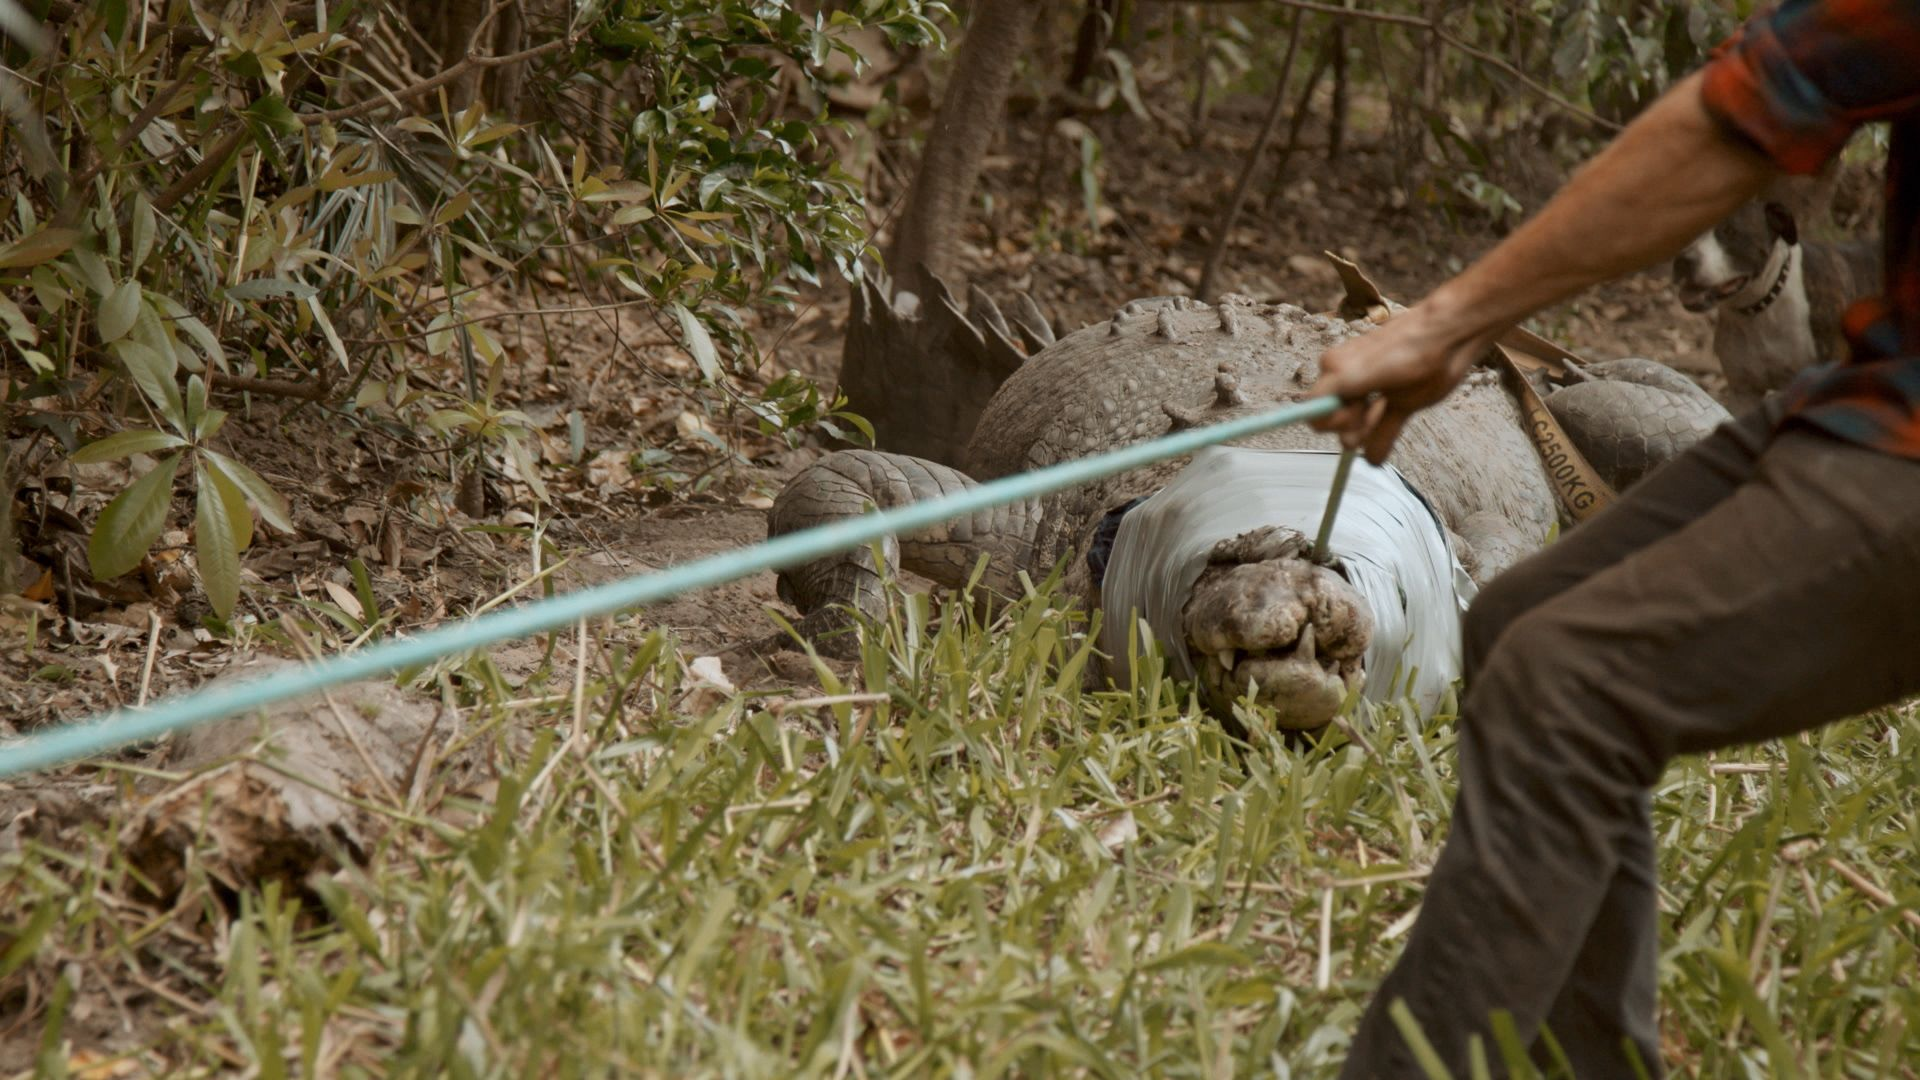 Jono holding monster croc by rope. This is from Monster Croc Wrangler [Photo of the day - October 2021]